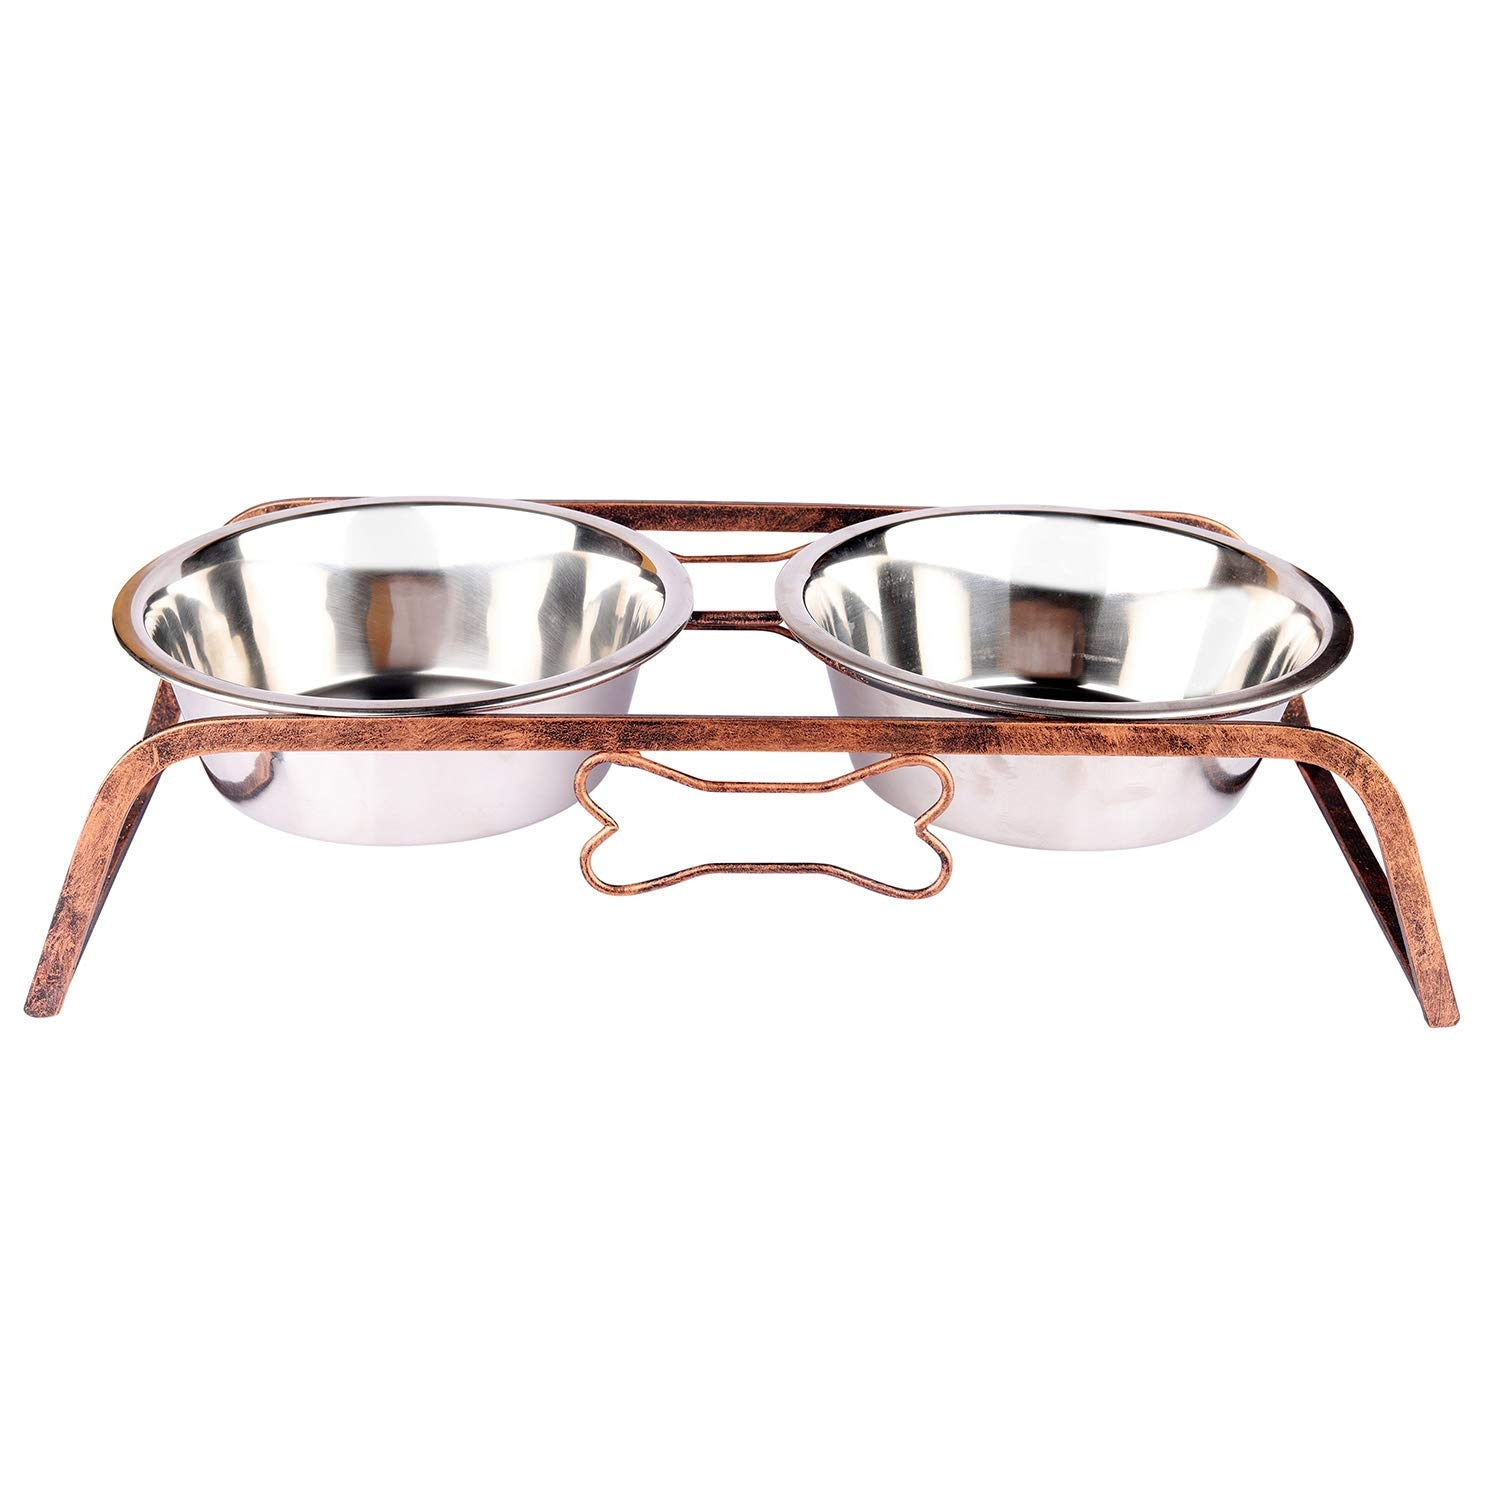 Pets Empire Wrought Iron Dog Bowl Stand Collection Rustic Bone Diner For Dogs And Cats Stainless Steel Food And Water Bowls With Iron Stand,Pack Of 1 (Medium (450 ML X 2 Bowl ))